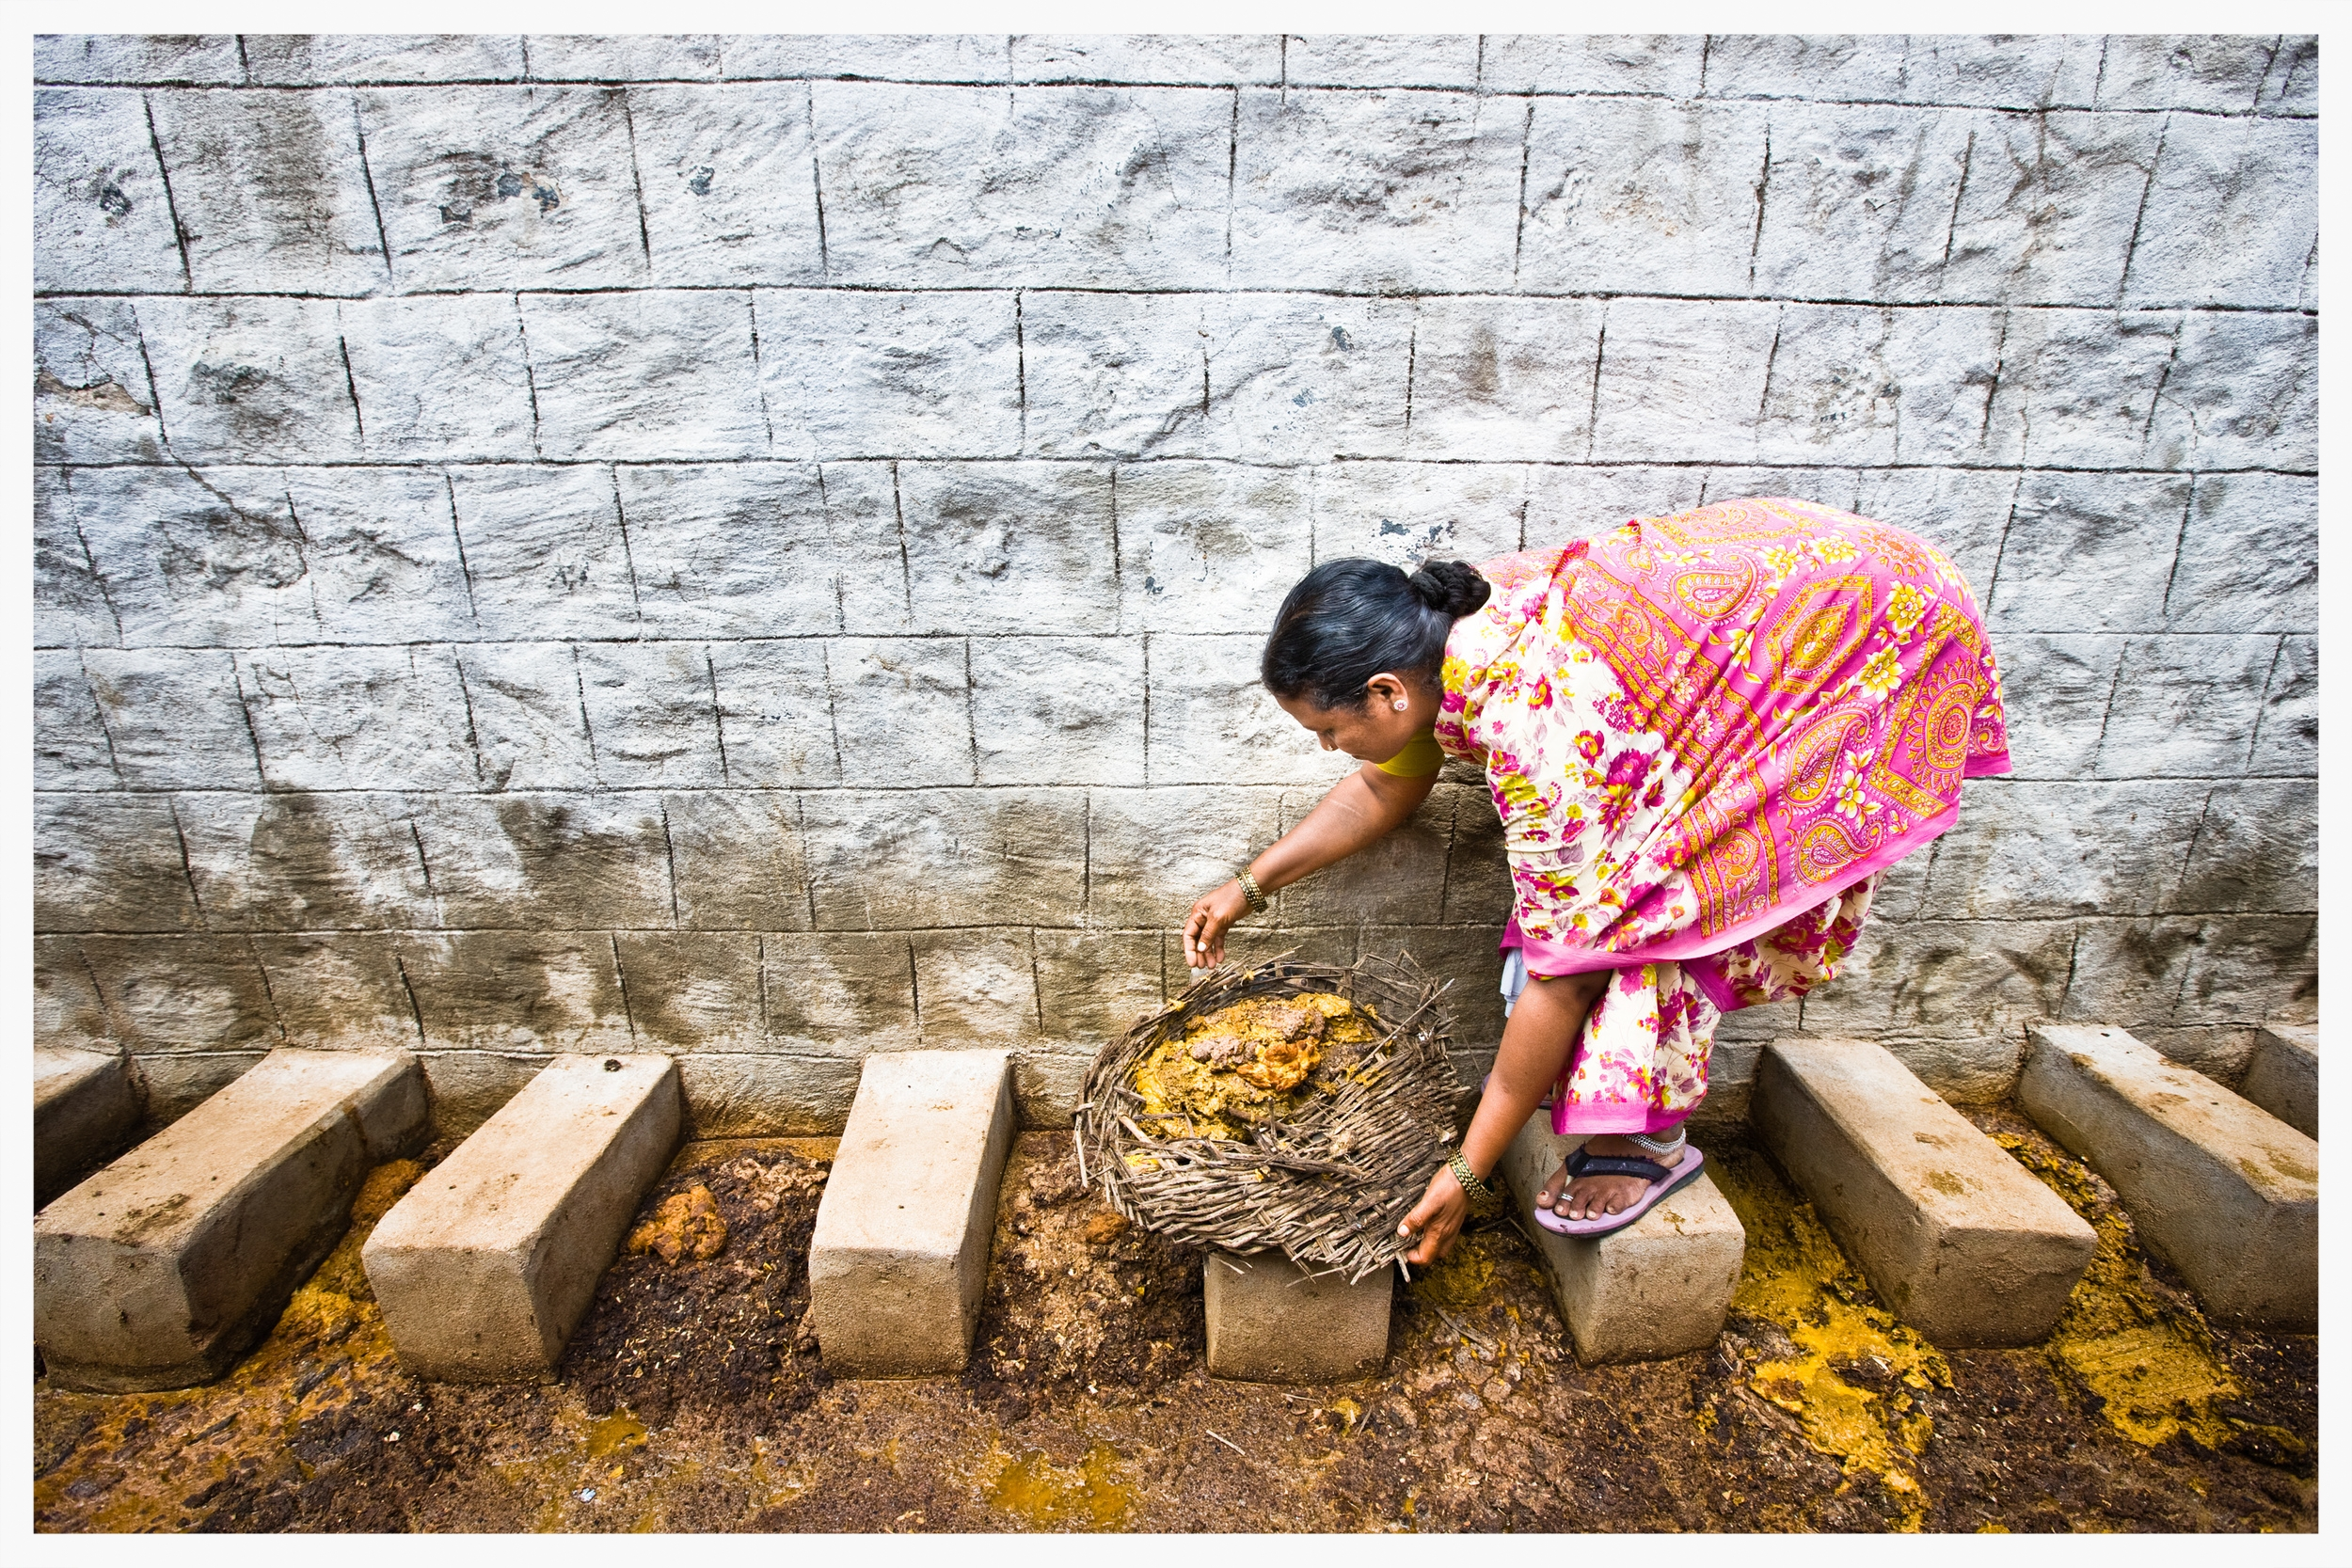 Manual scavenger, Indian Dalits, Being Untouchable. Photo: © Marcus Perkins